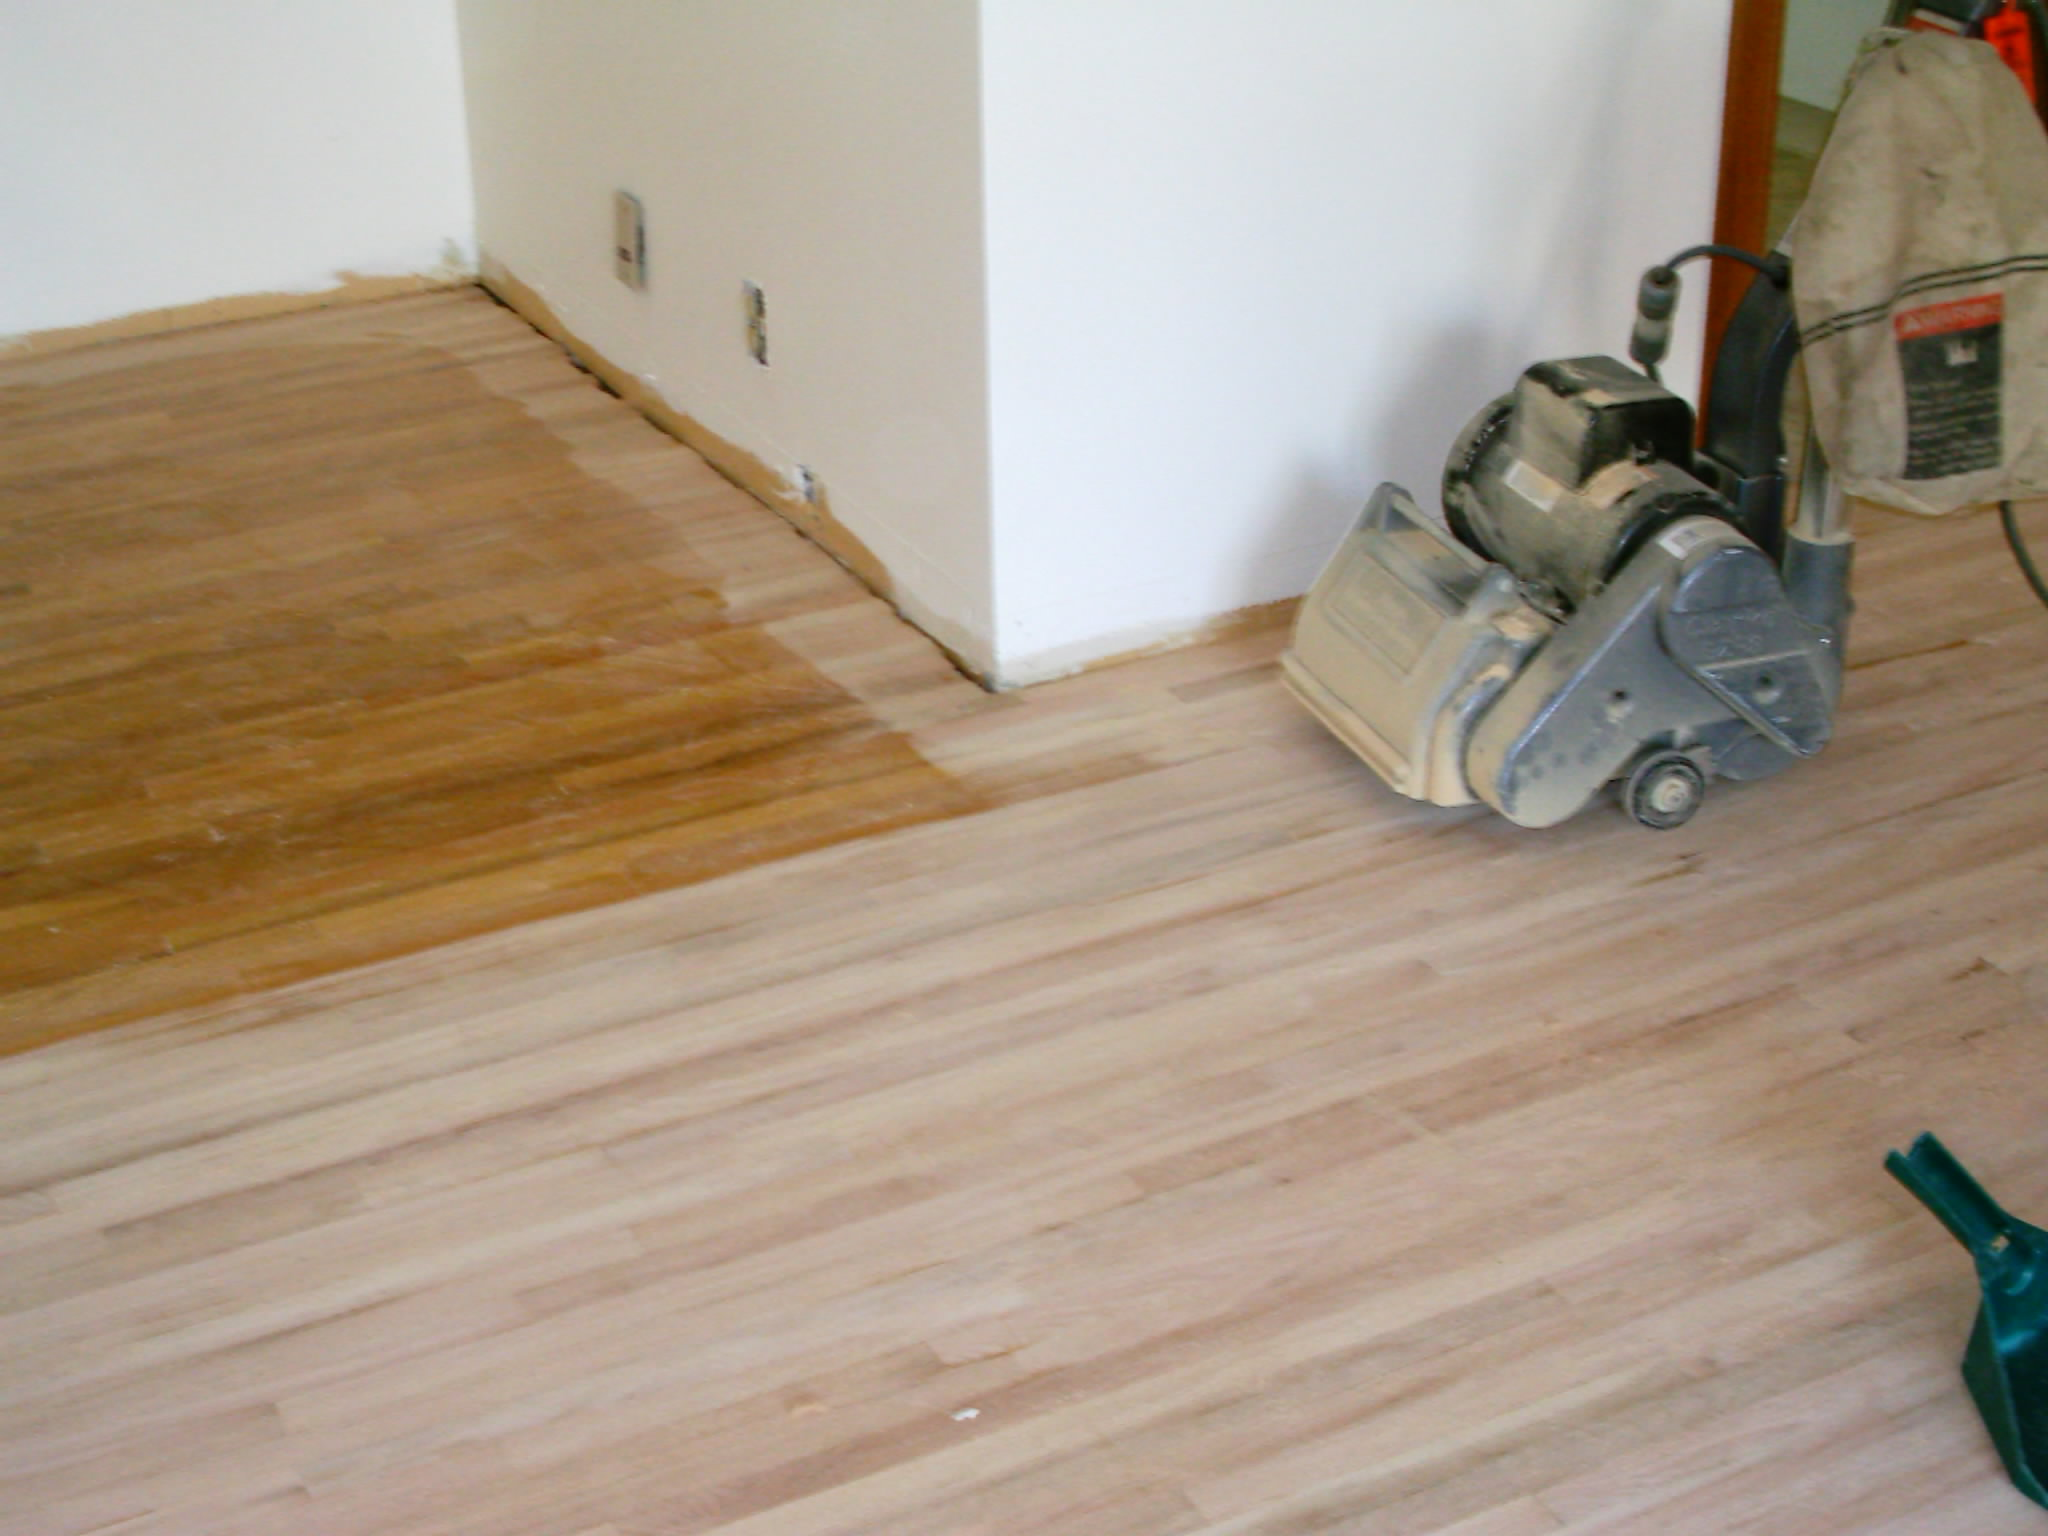 sanding wooden floorboards